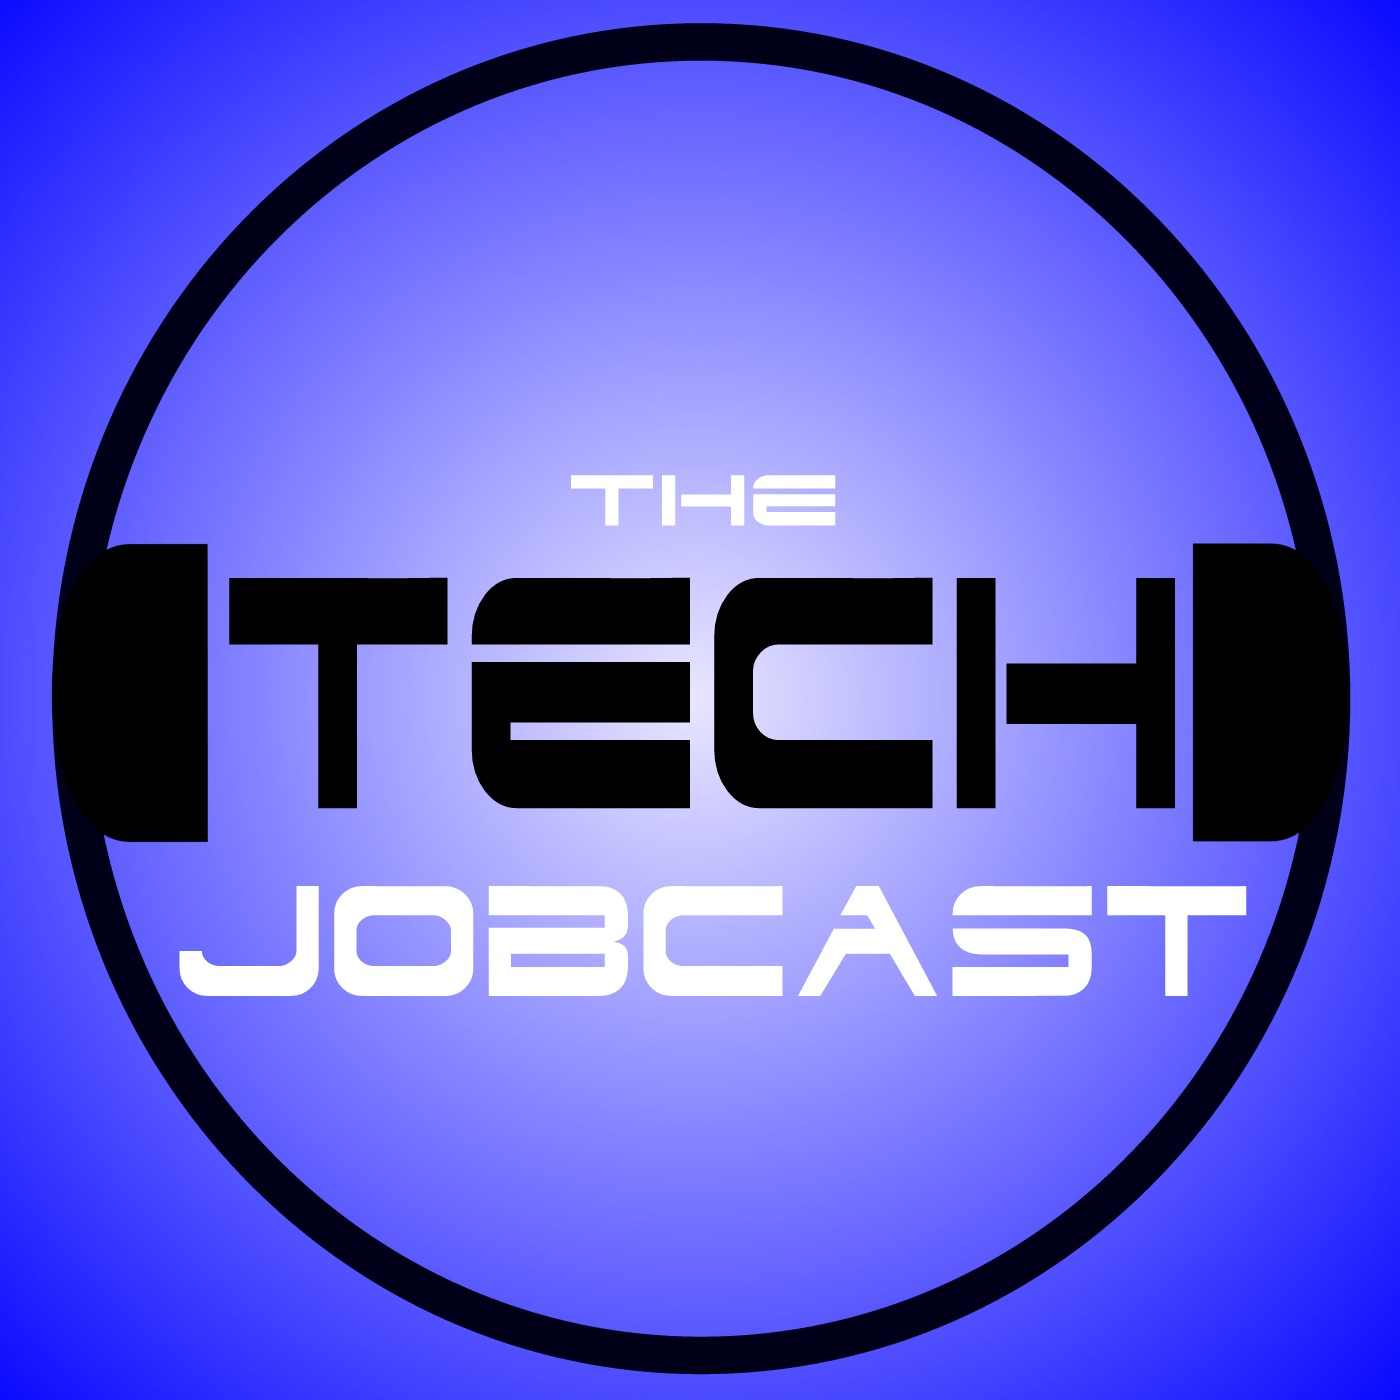 IT Job listings for the week of July 9, 2017